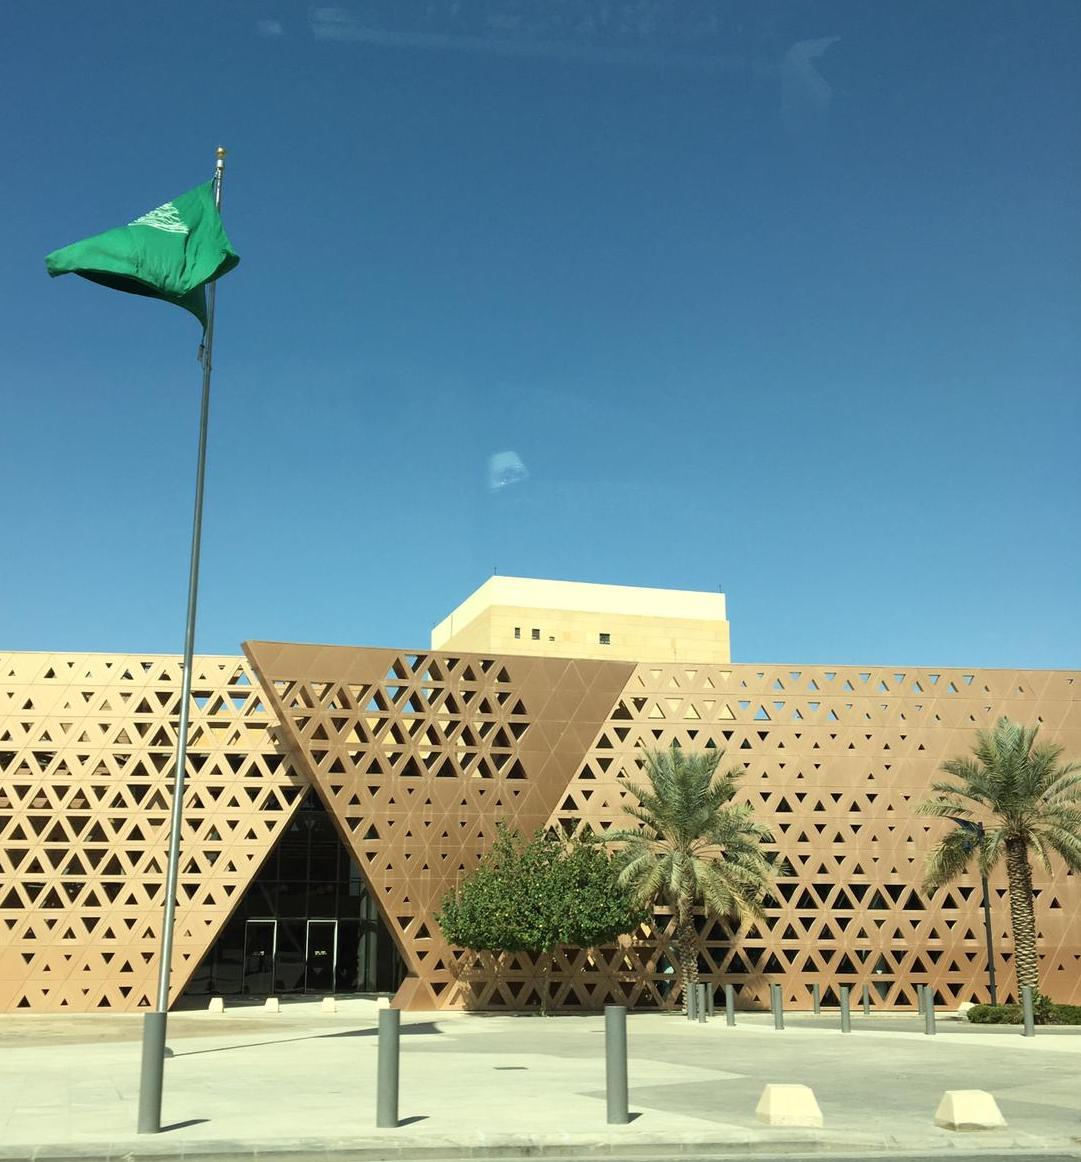 Beautiful architecture in Riyadh, Saudi Arabia. A building made up of triangle shapes in gold metal, with the national flag flown above the roof.